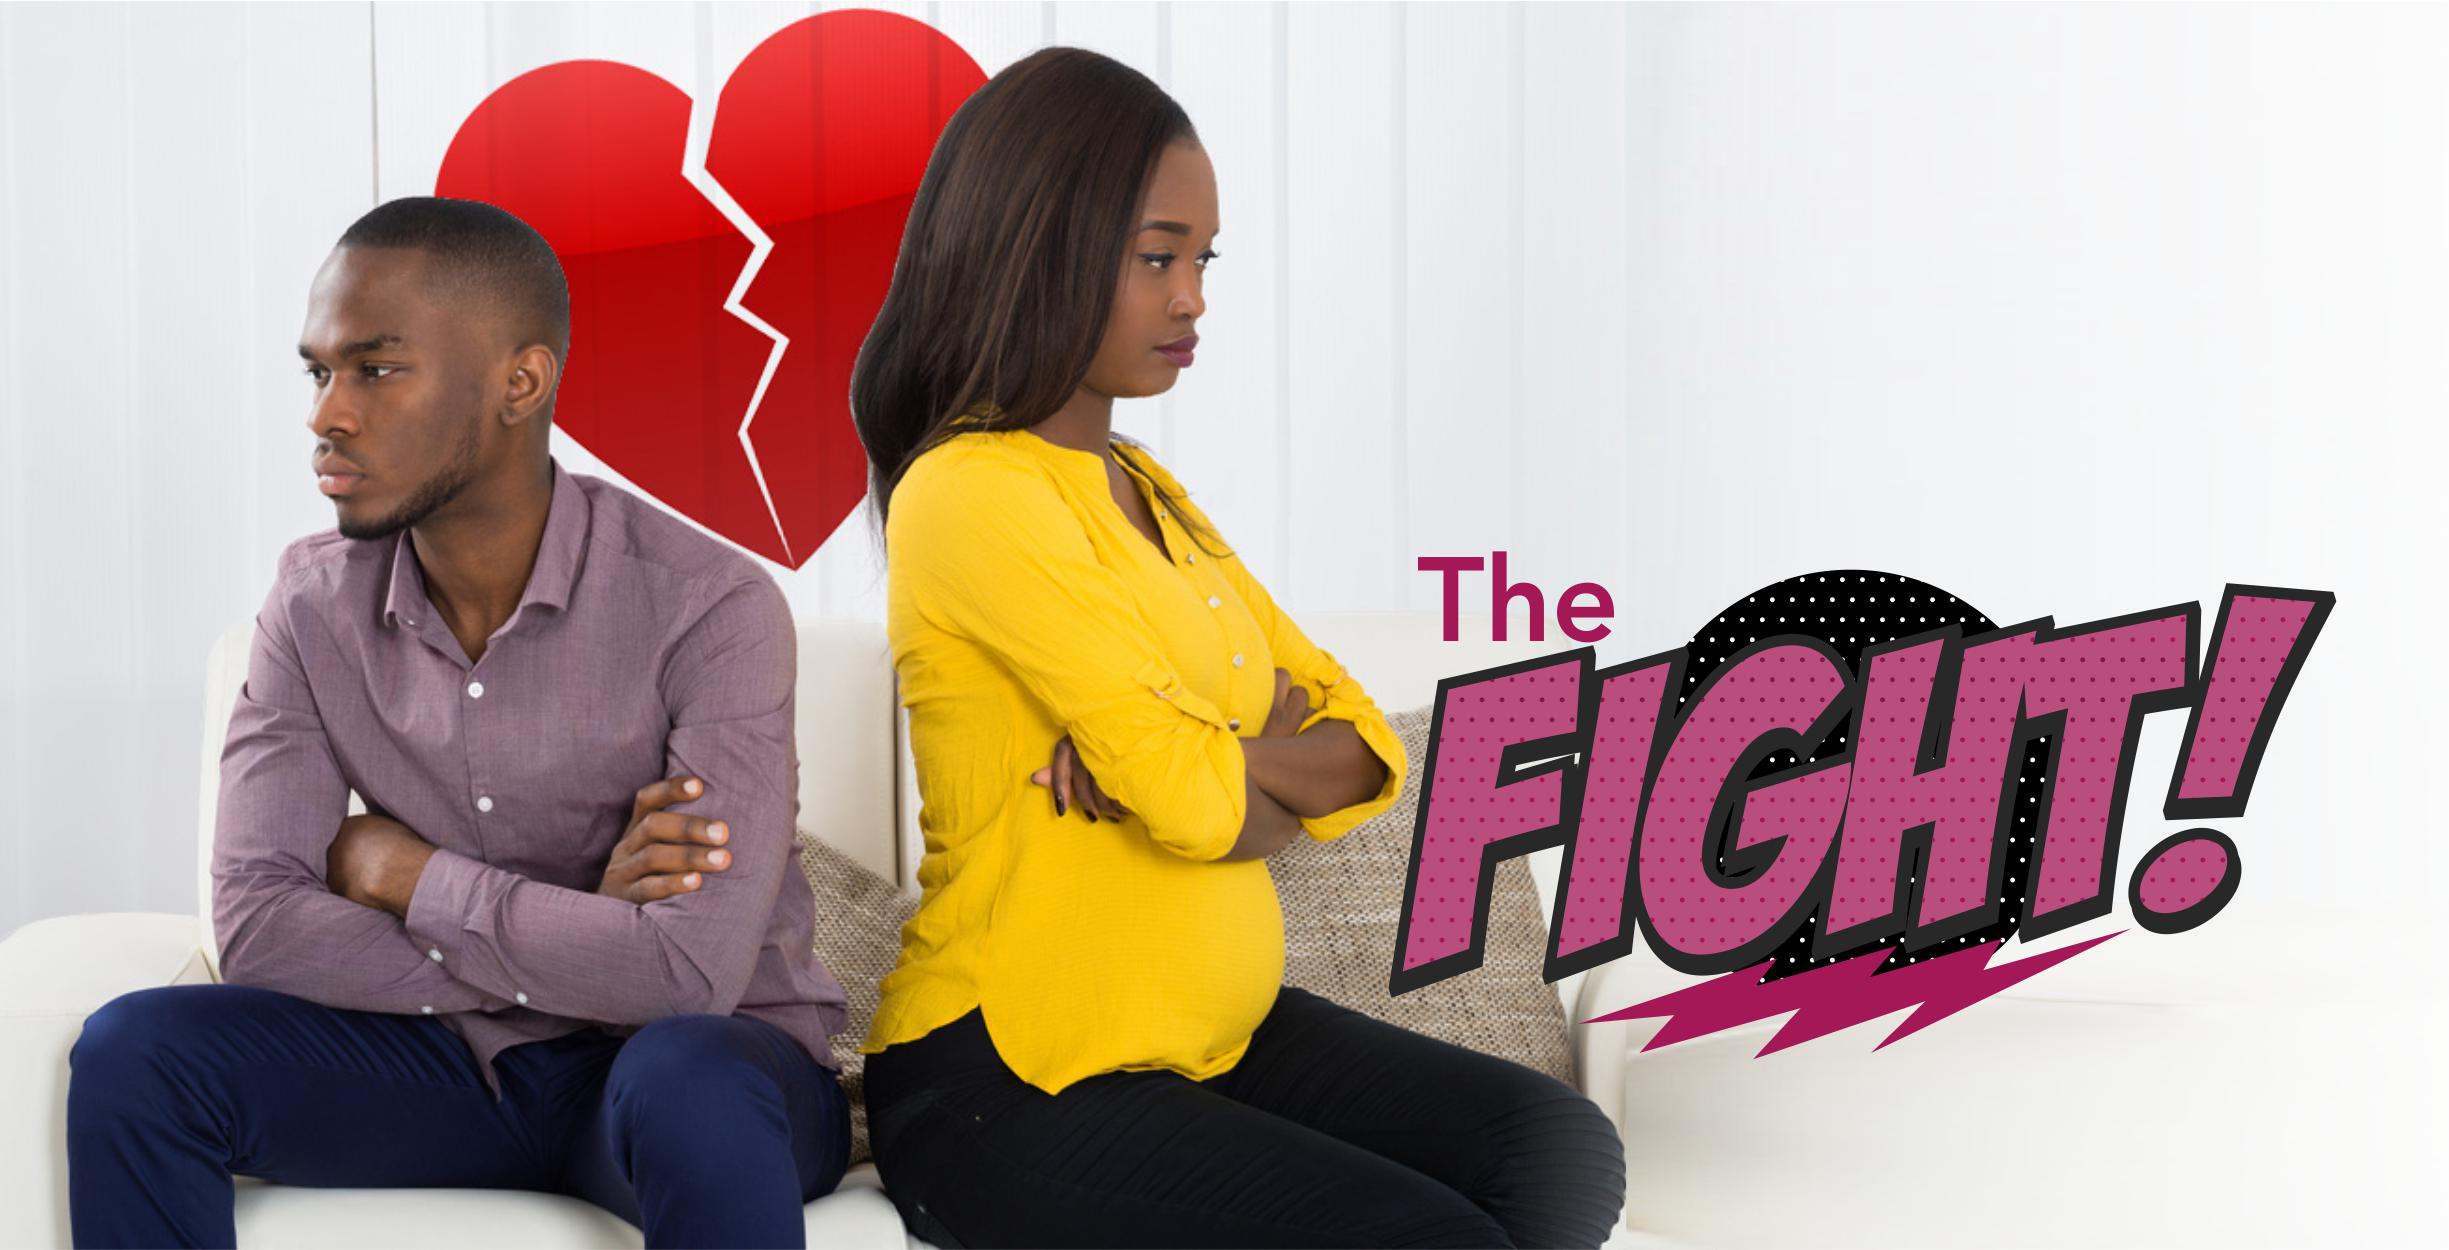 The Valentine's Day fight